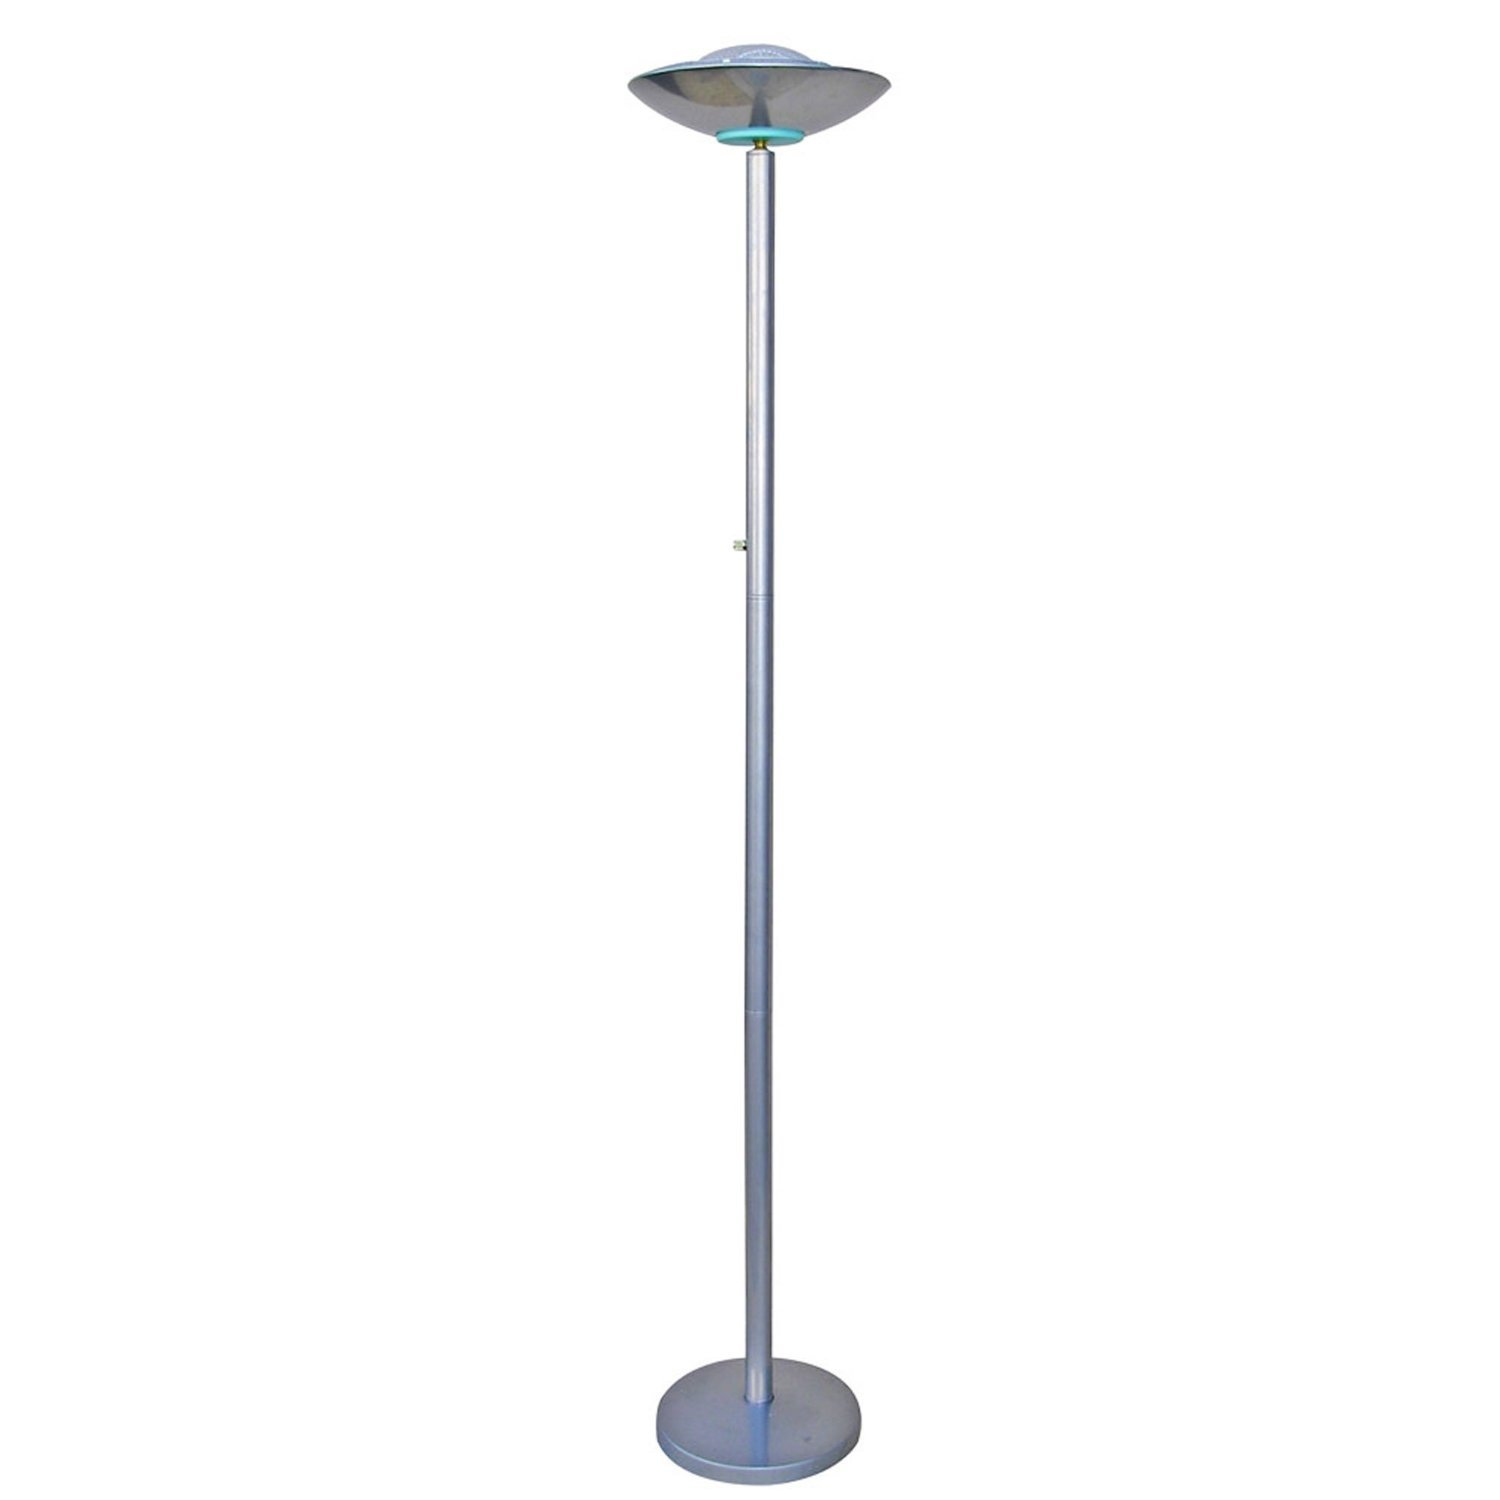 Fancy halogen torchiere floor lamp 70 tall silver tall floor lamp fancy halogen torchiere floor lamp 70 tall silver tall floor lamp for living room amazon mozeypictures Gallery